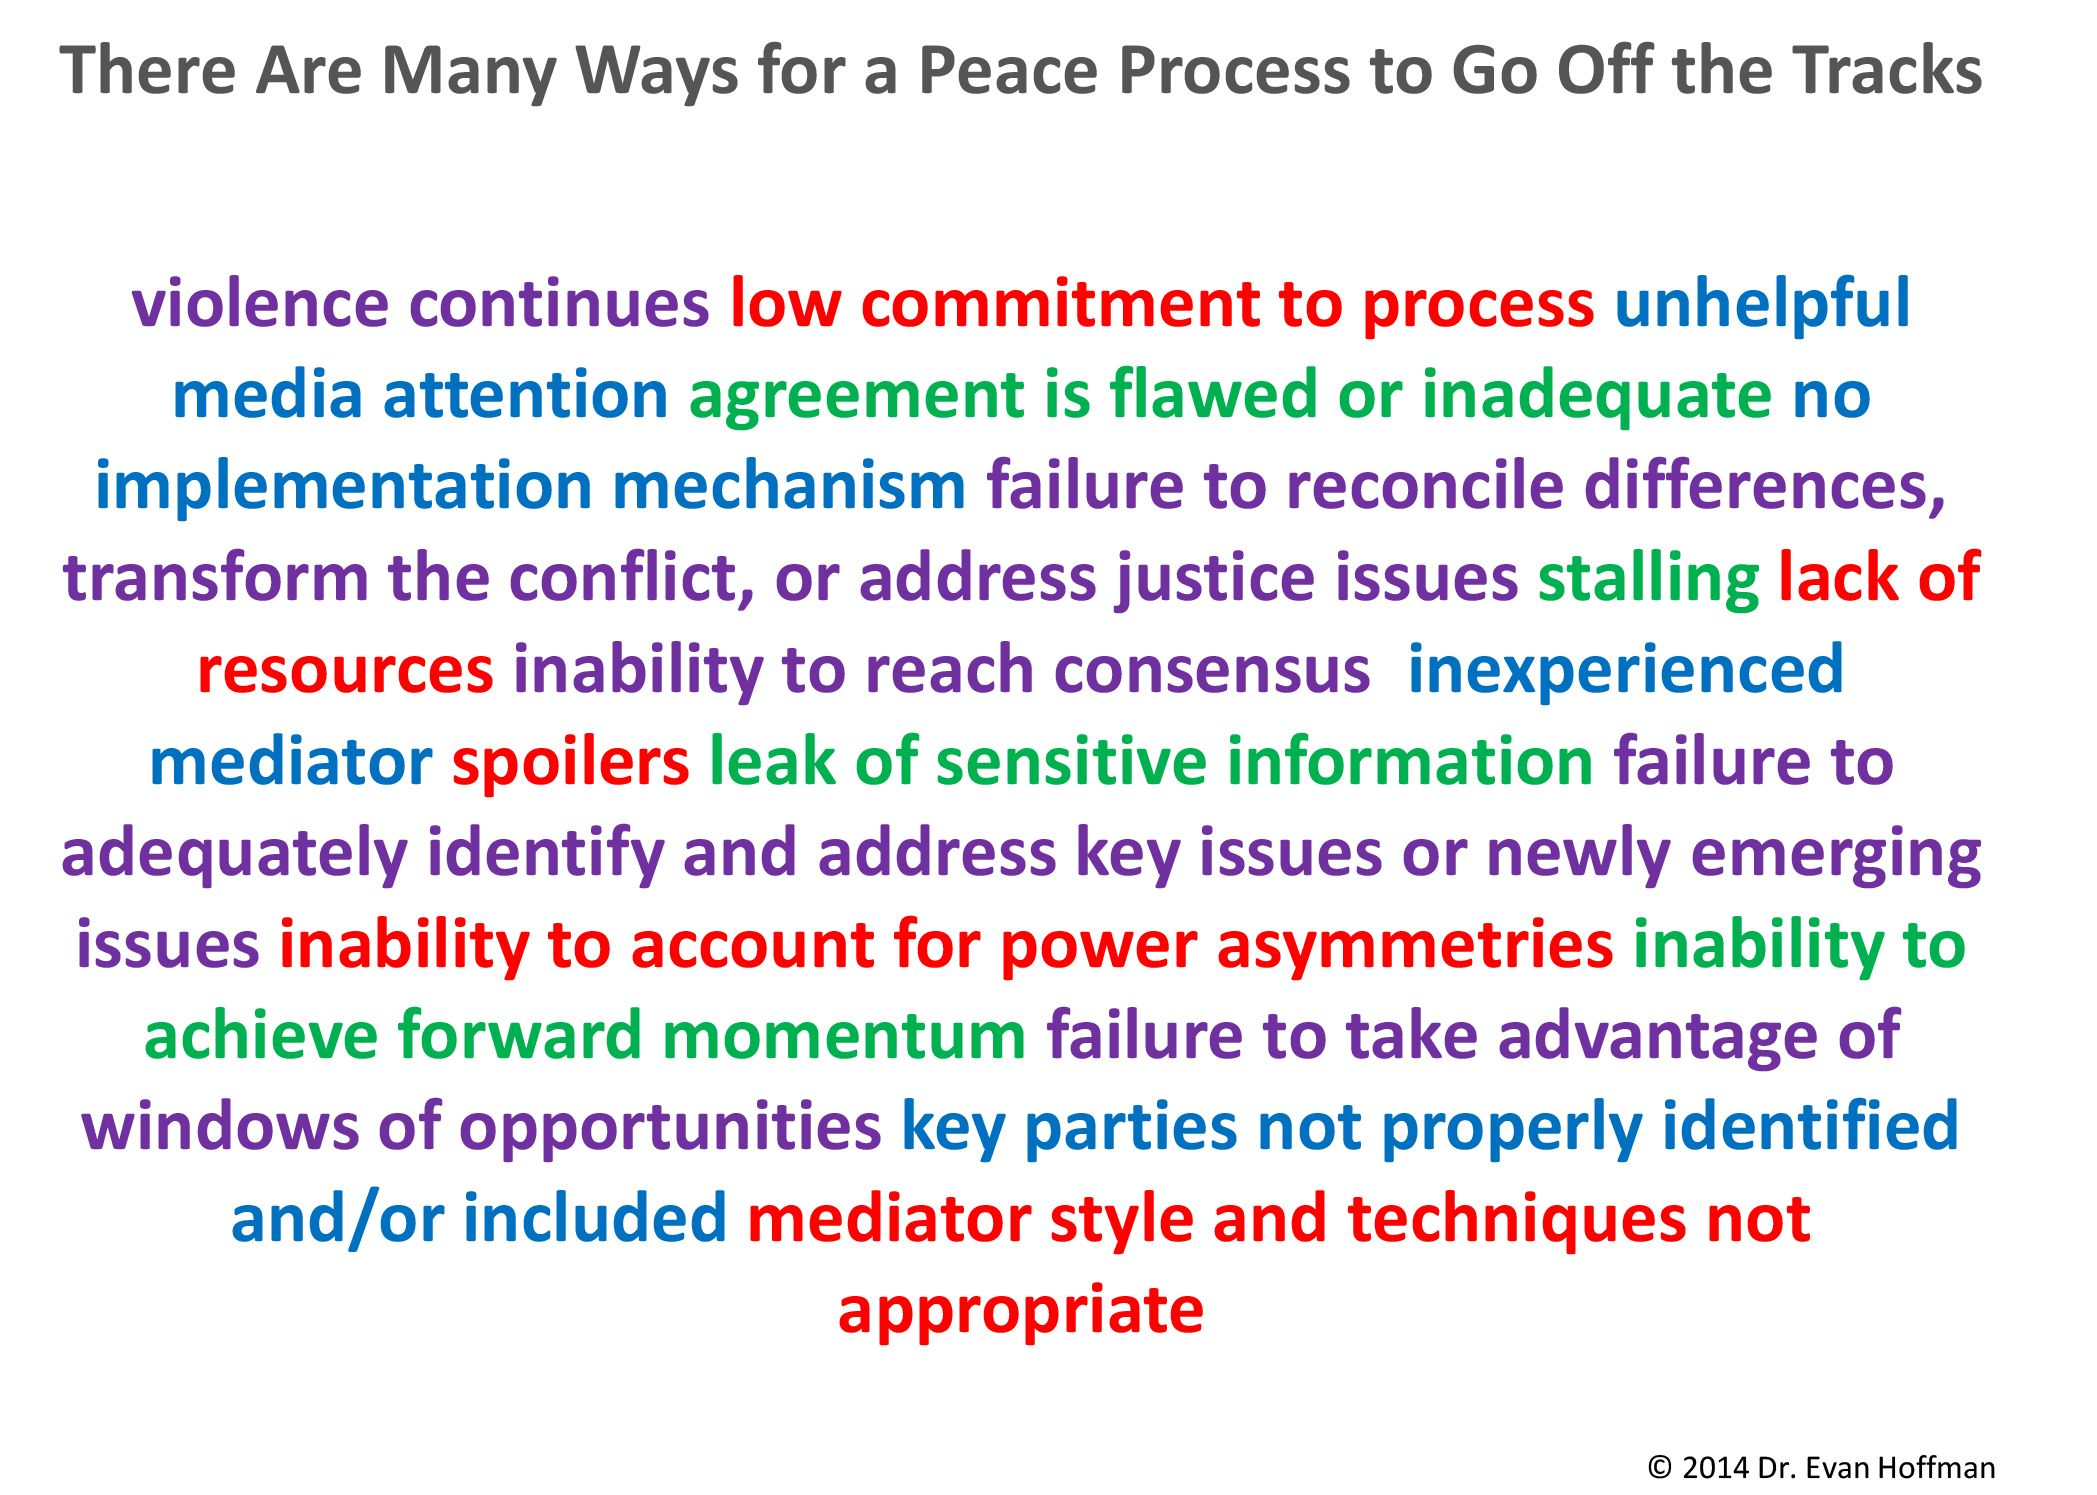 There Are Many Ways For A Peace Process To Go Off The